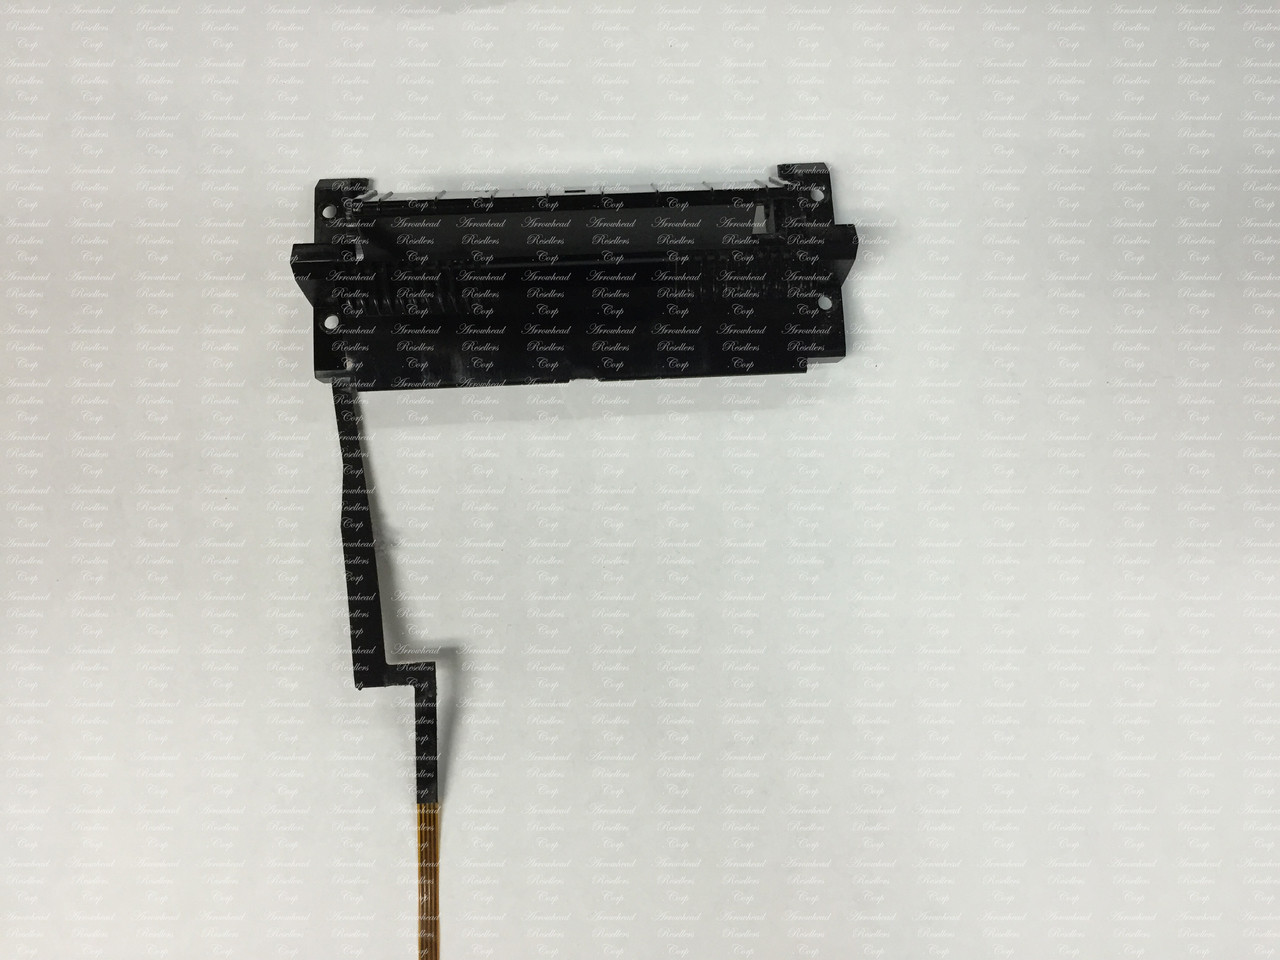 Bar Sensor with Holder for QLn320 | P1060876 | P1060876 - Zebra